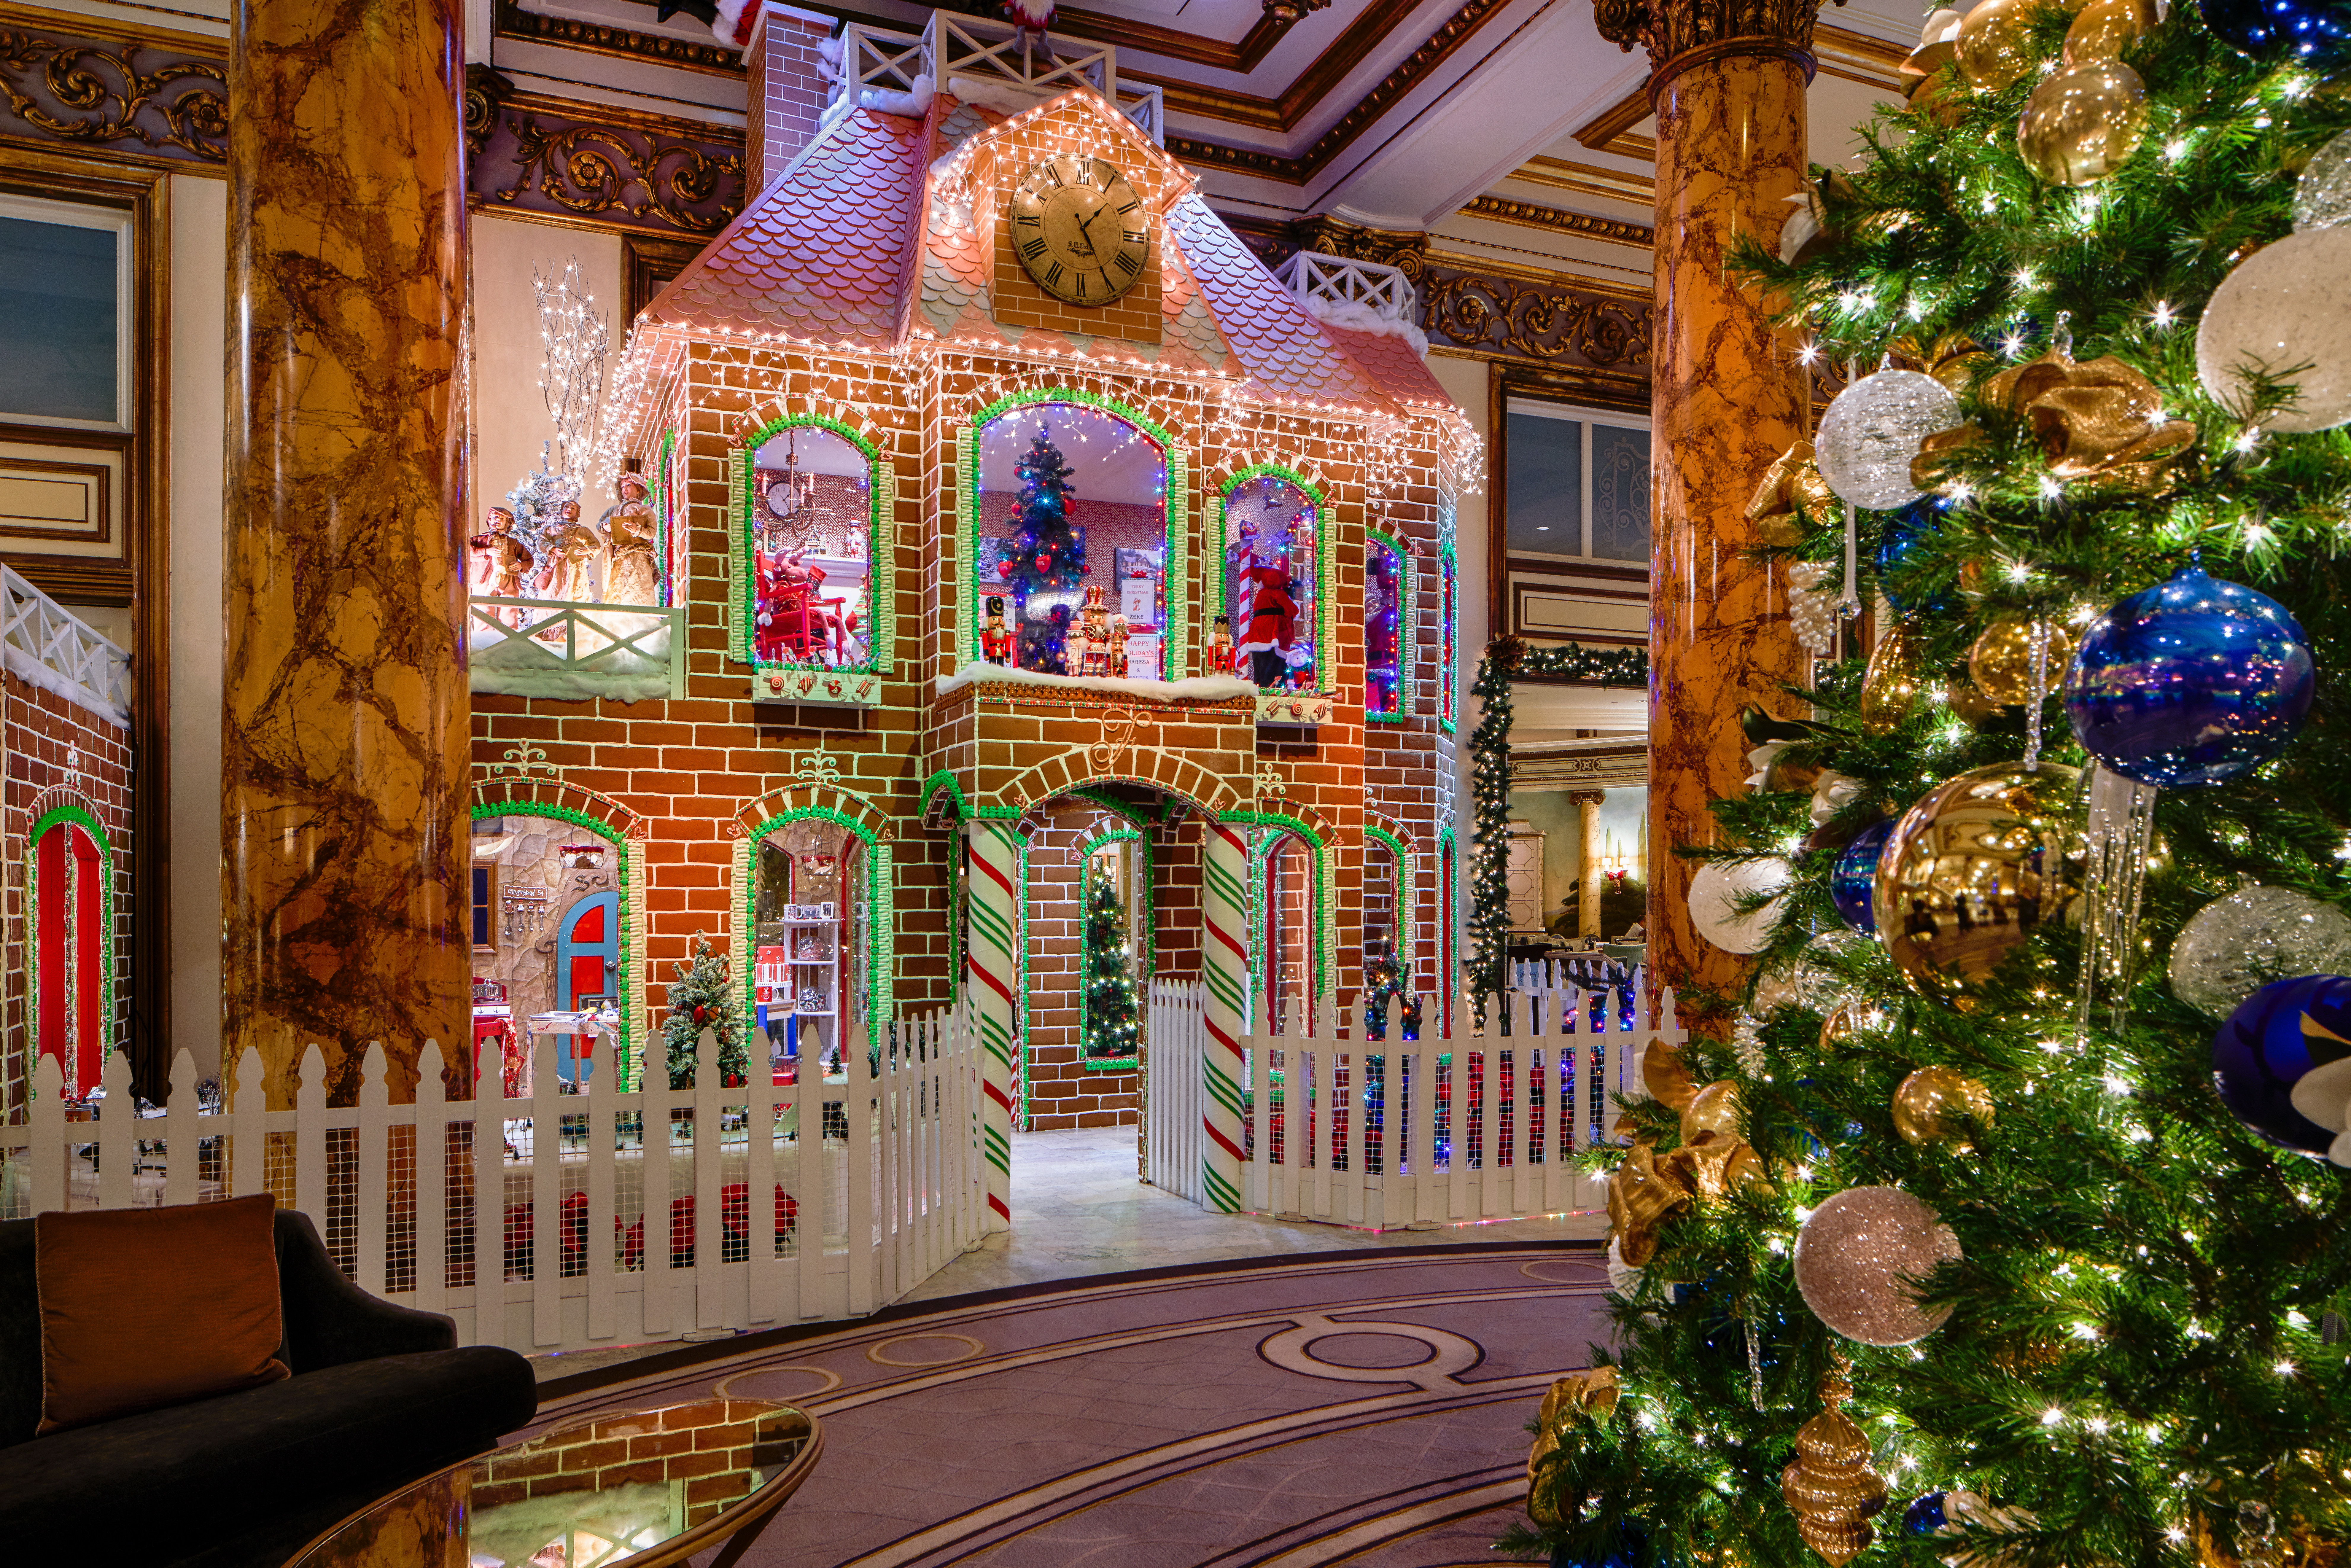 A two-story gingerbread house with lights, frosting, and edible bricks in the middle of a hotel lobby.